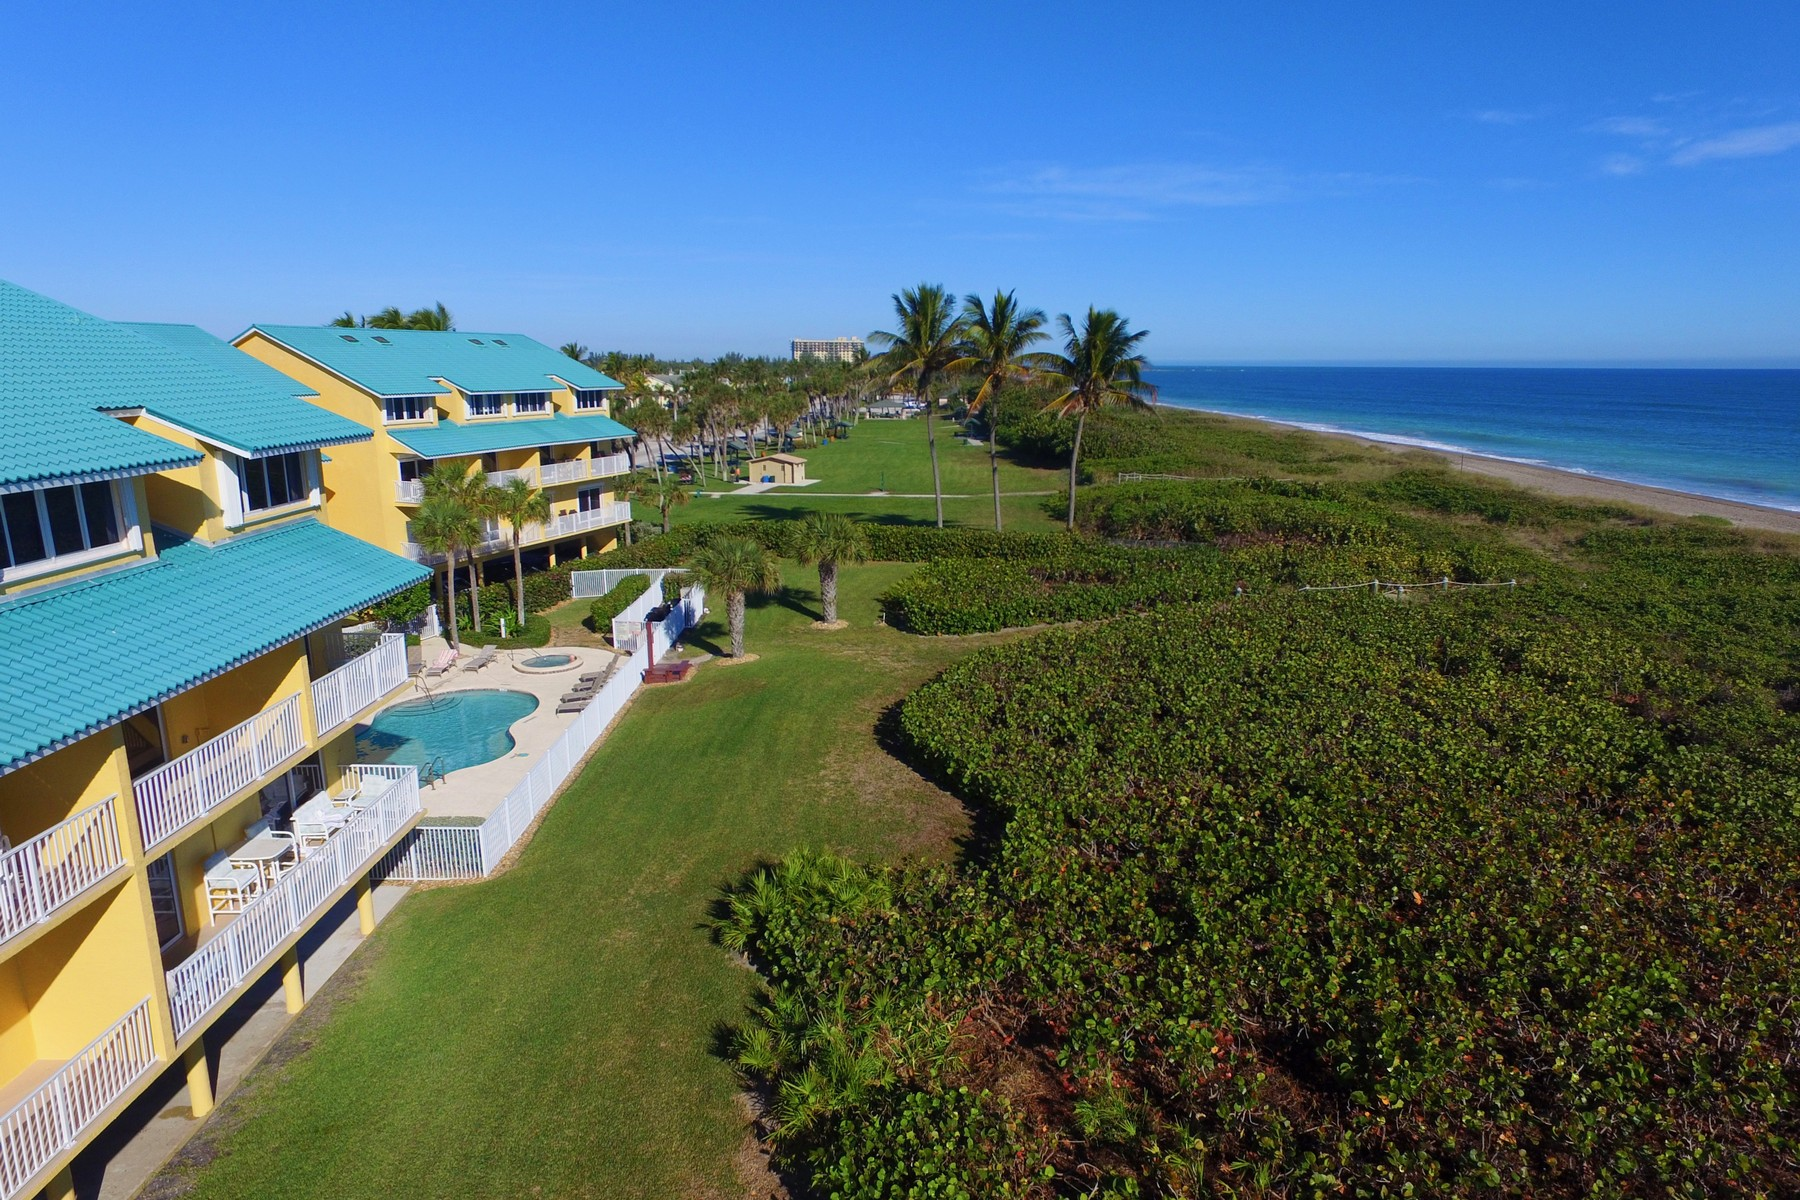 Additional photo for property listing at Location, Location! Cozy Two Bedroom Turn-Key Condo on Hutchinson Island 1550 S Ocean Drive #D24 Hutchinson Island, Florida 34949 United States